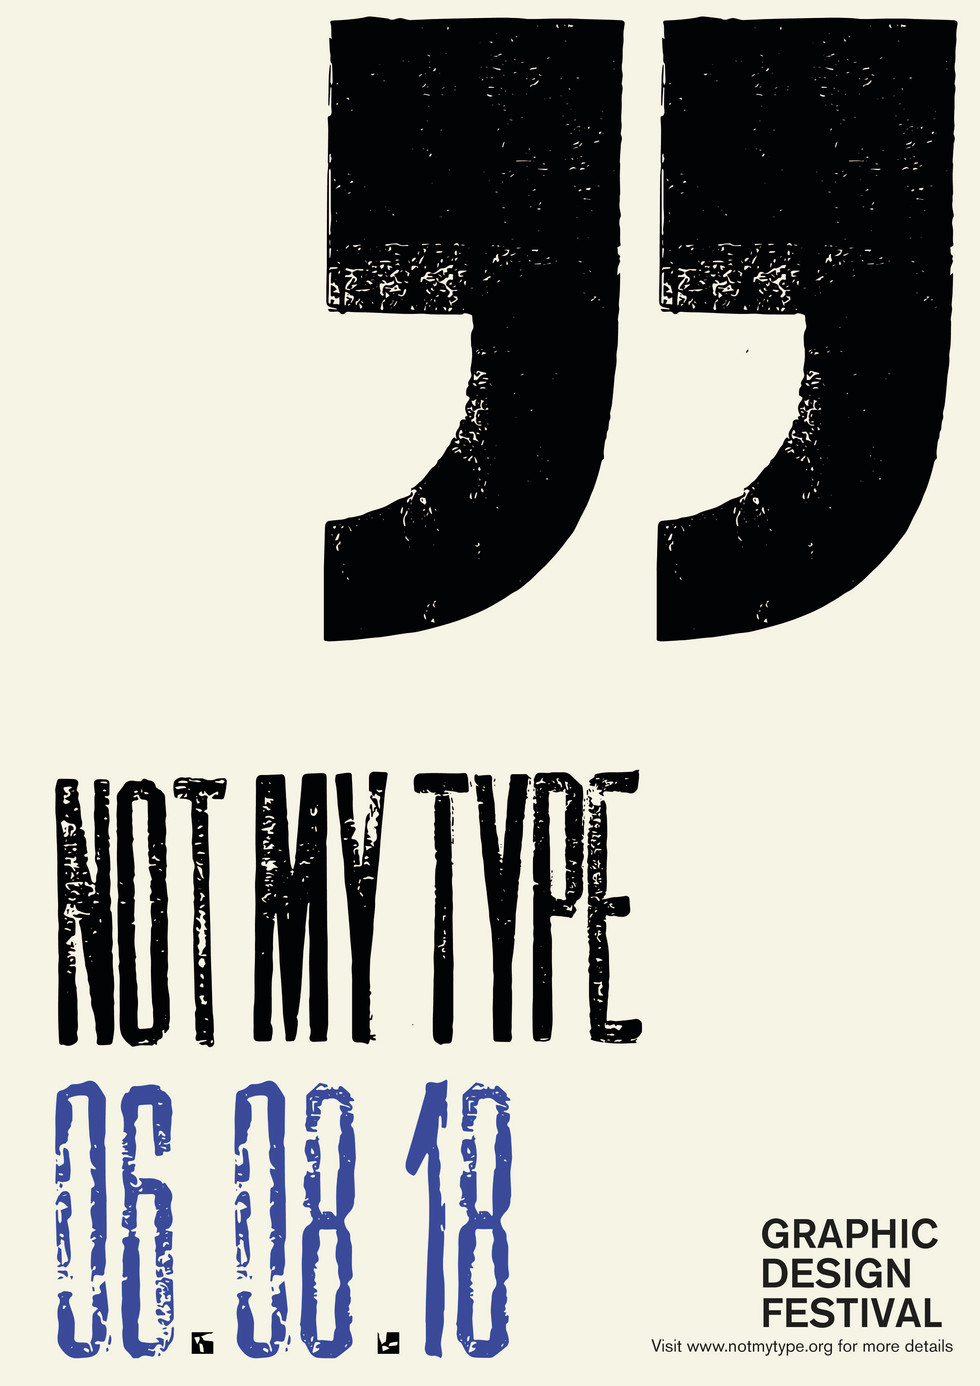 Not my type posters a3-02.jpg